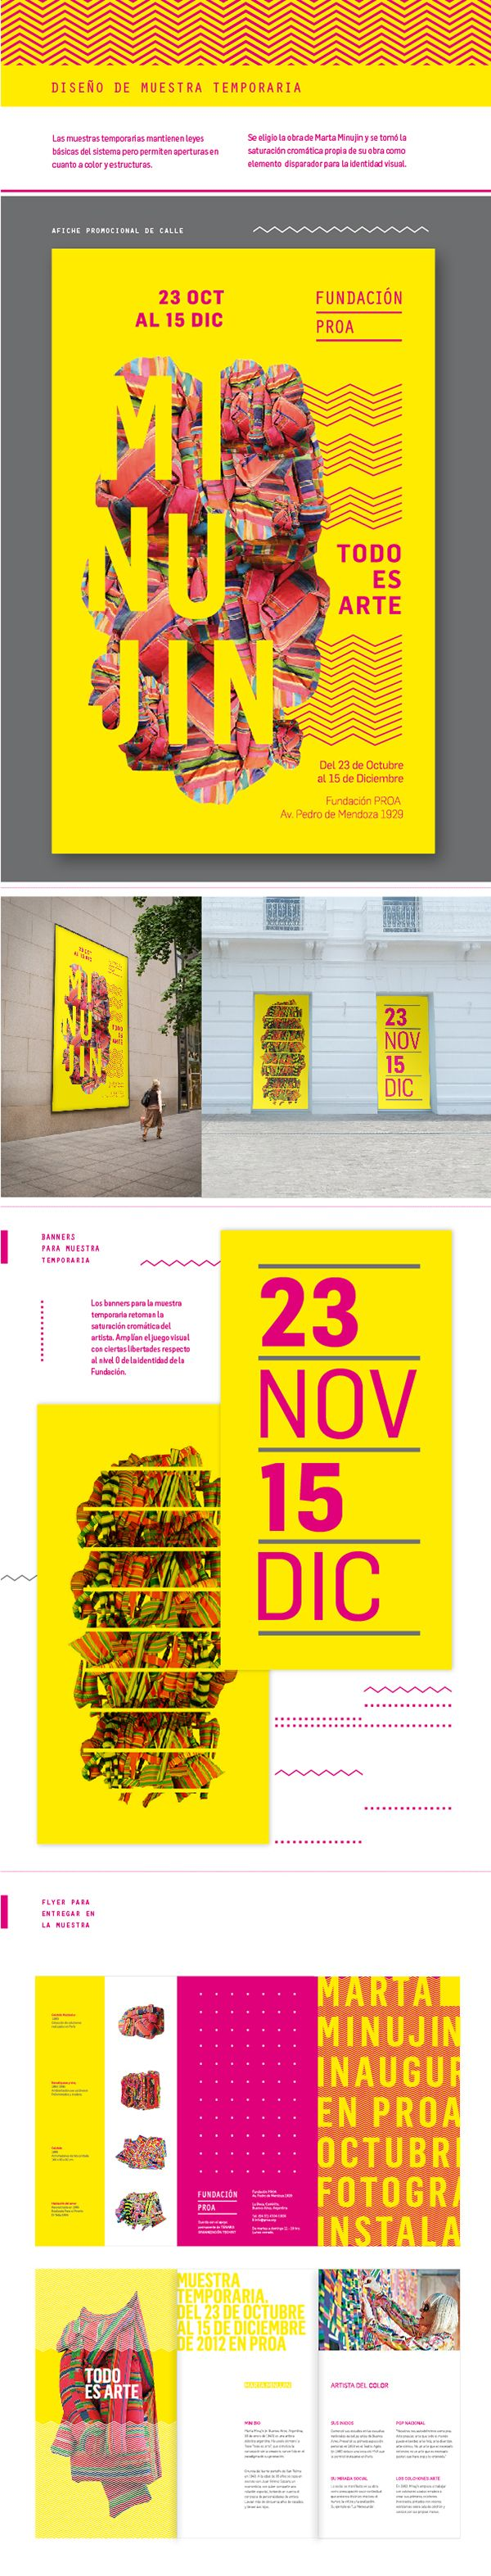 Poster design site - Identidad Fundaci N Proa On Behance